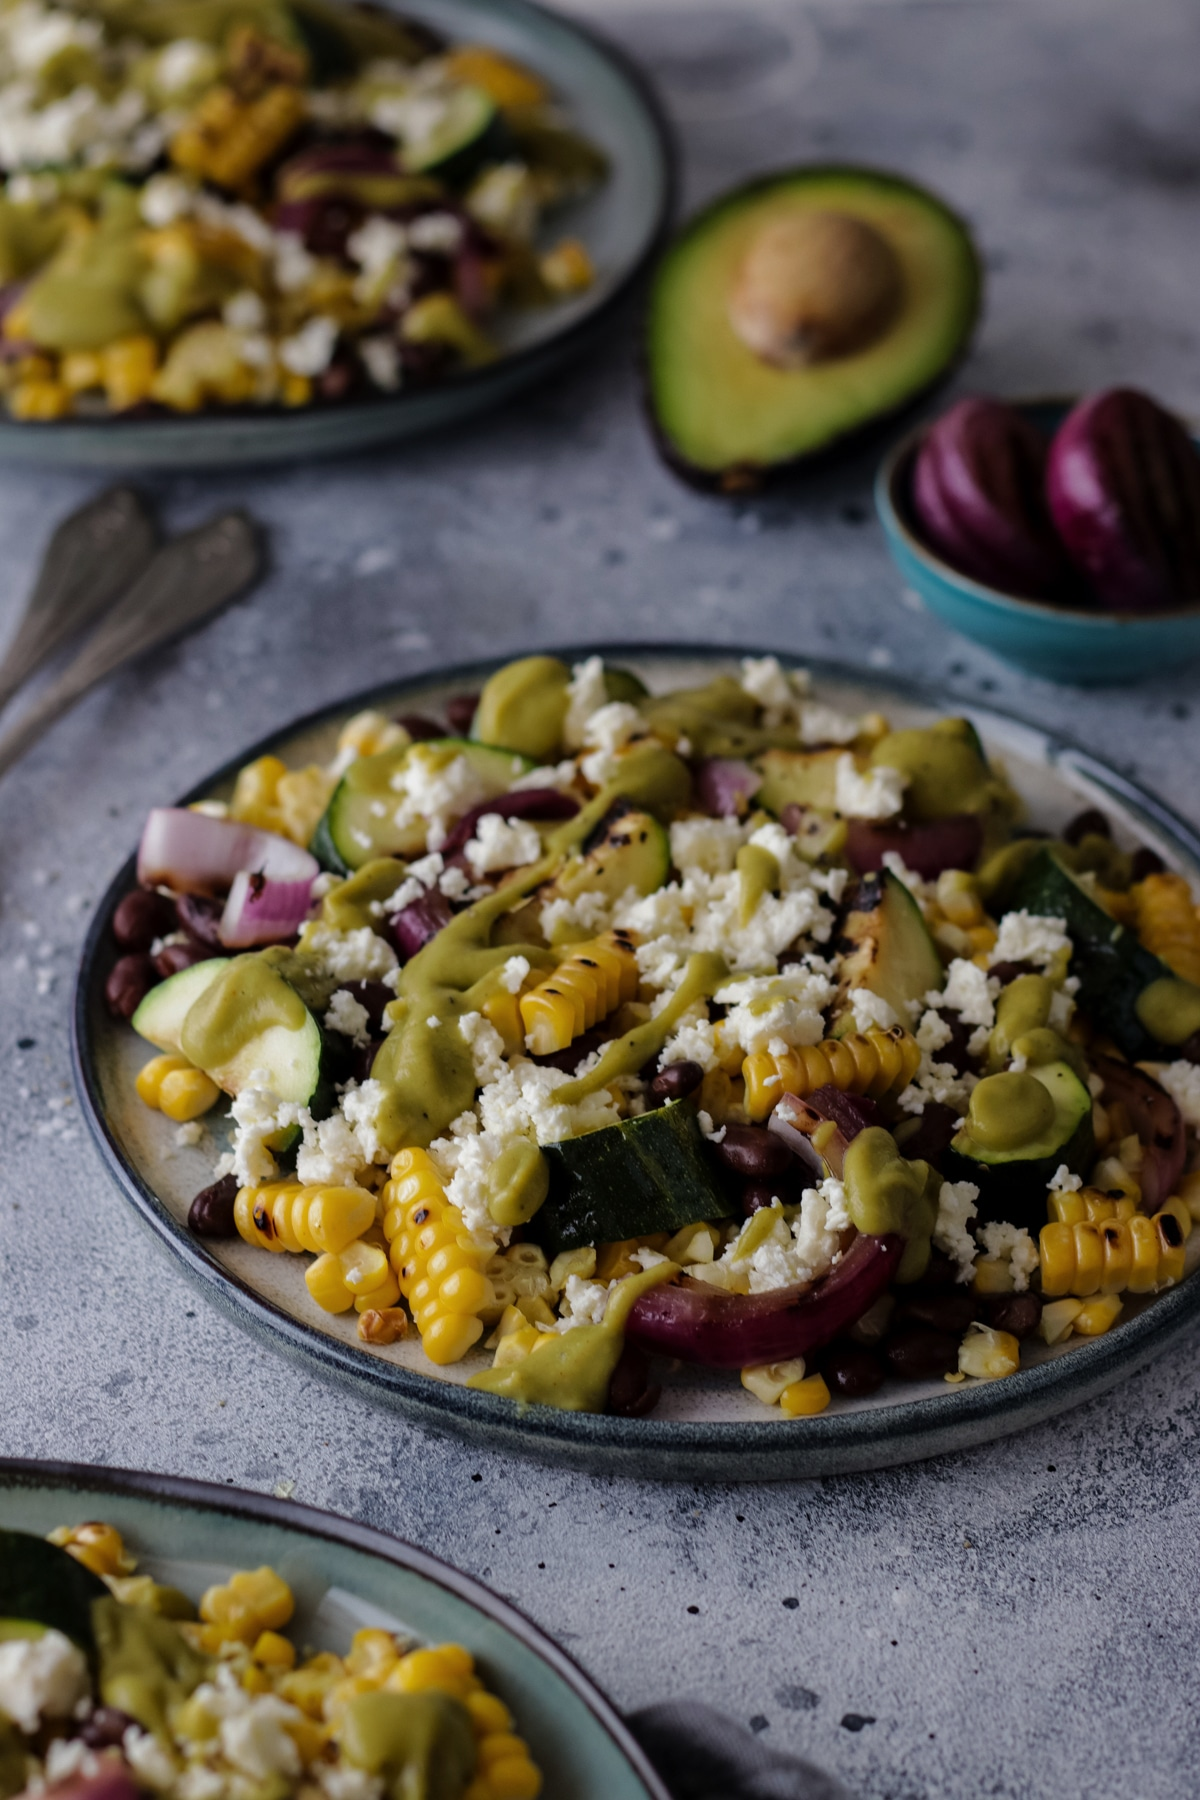 Corn Zucchini Salad on a Plate Surrounded by Ingredients